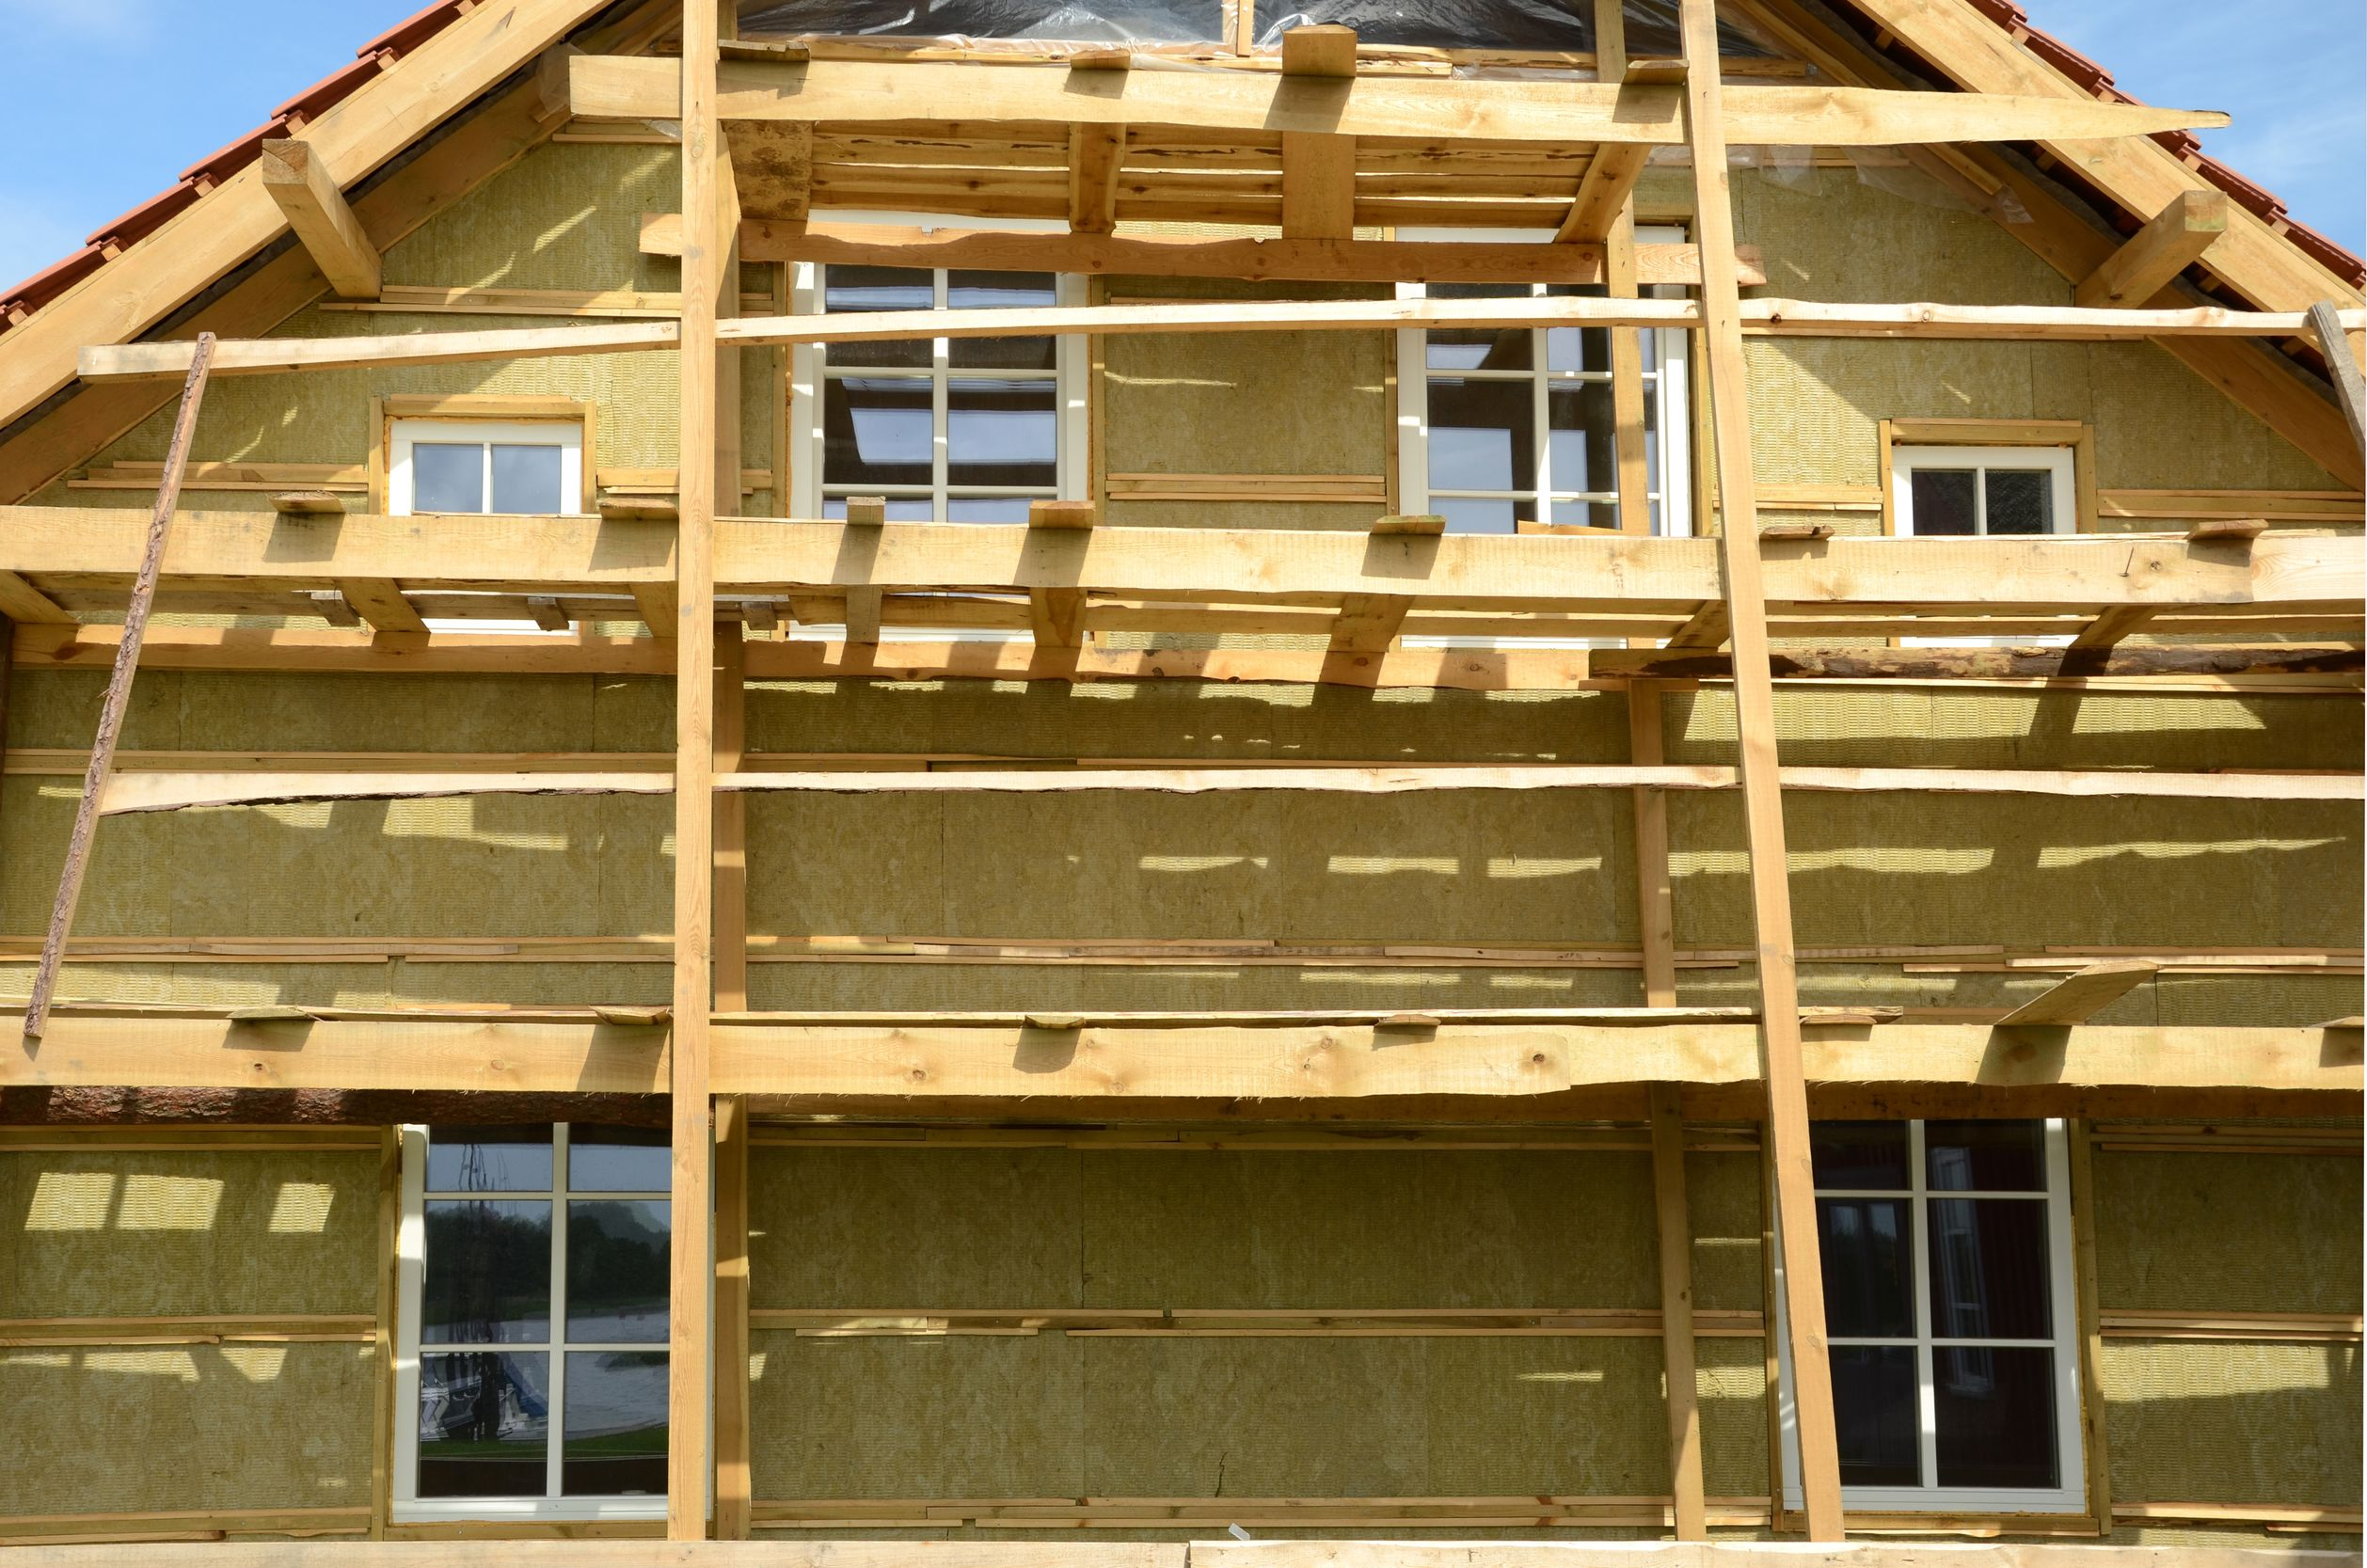 18213092 - new wooden house  exterior thermal insulation with mineral rockwool